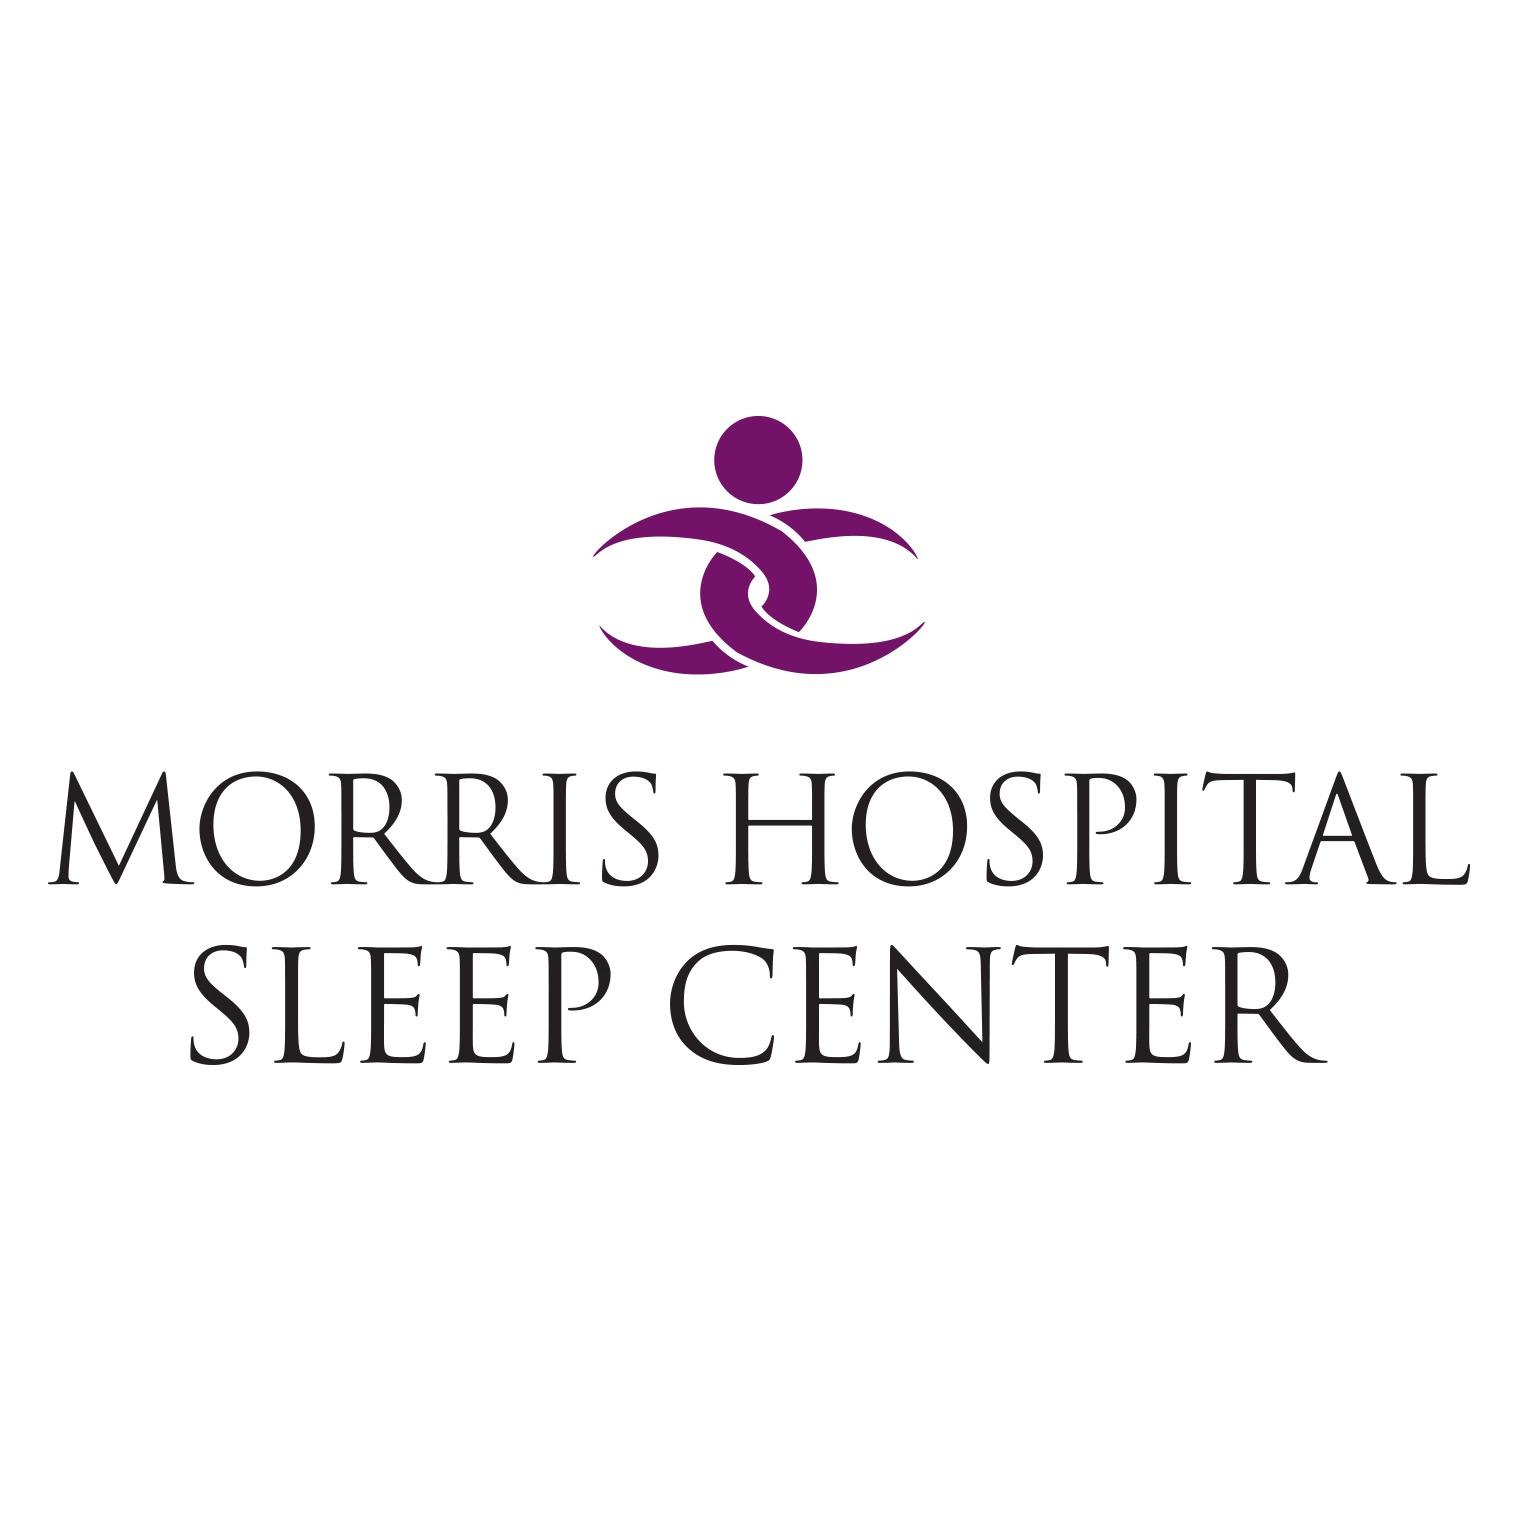 Morris Hospital Sleep Center